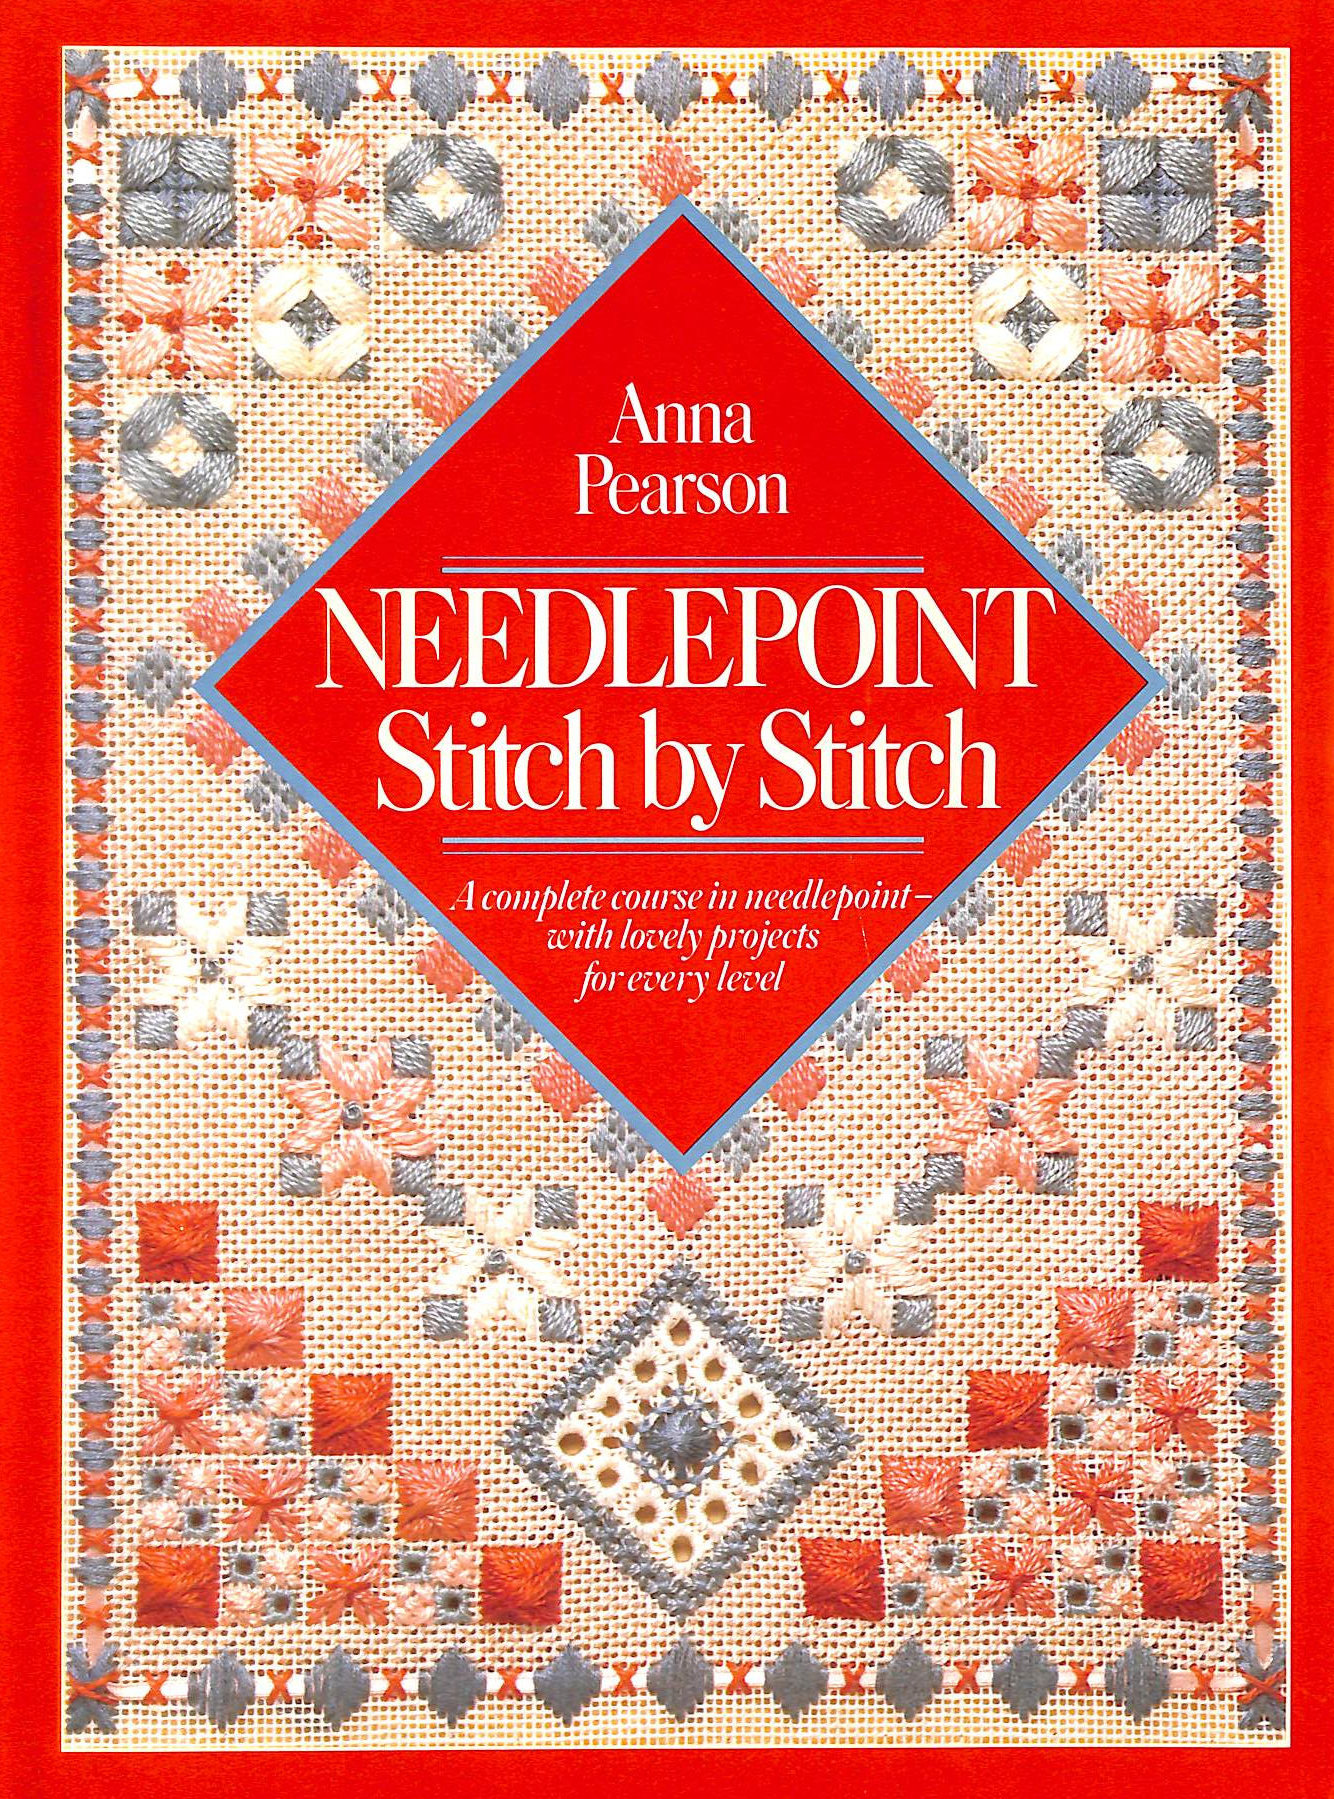 Image for Needlepoint Stitch by Stitch